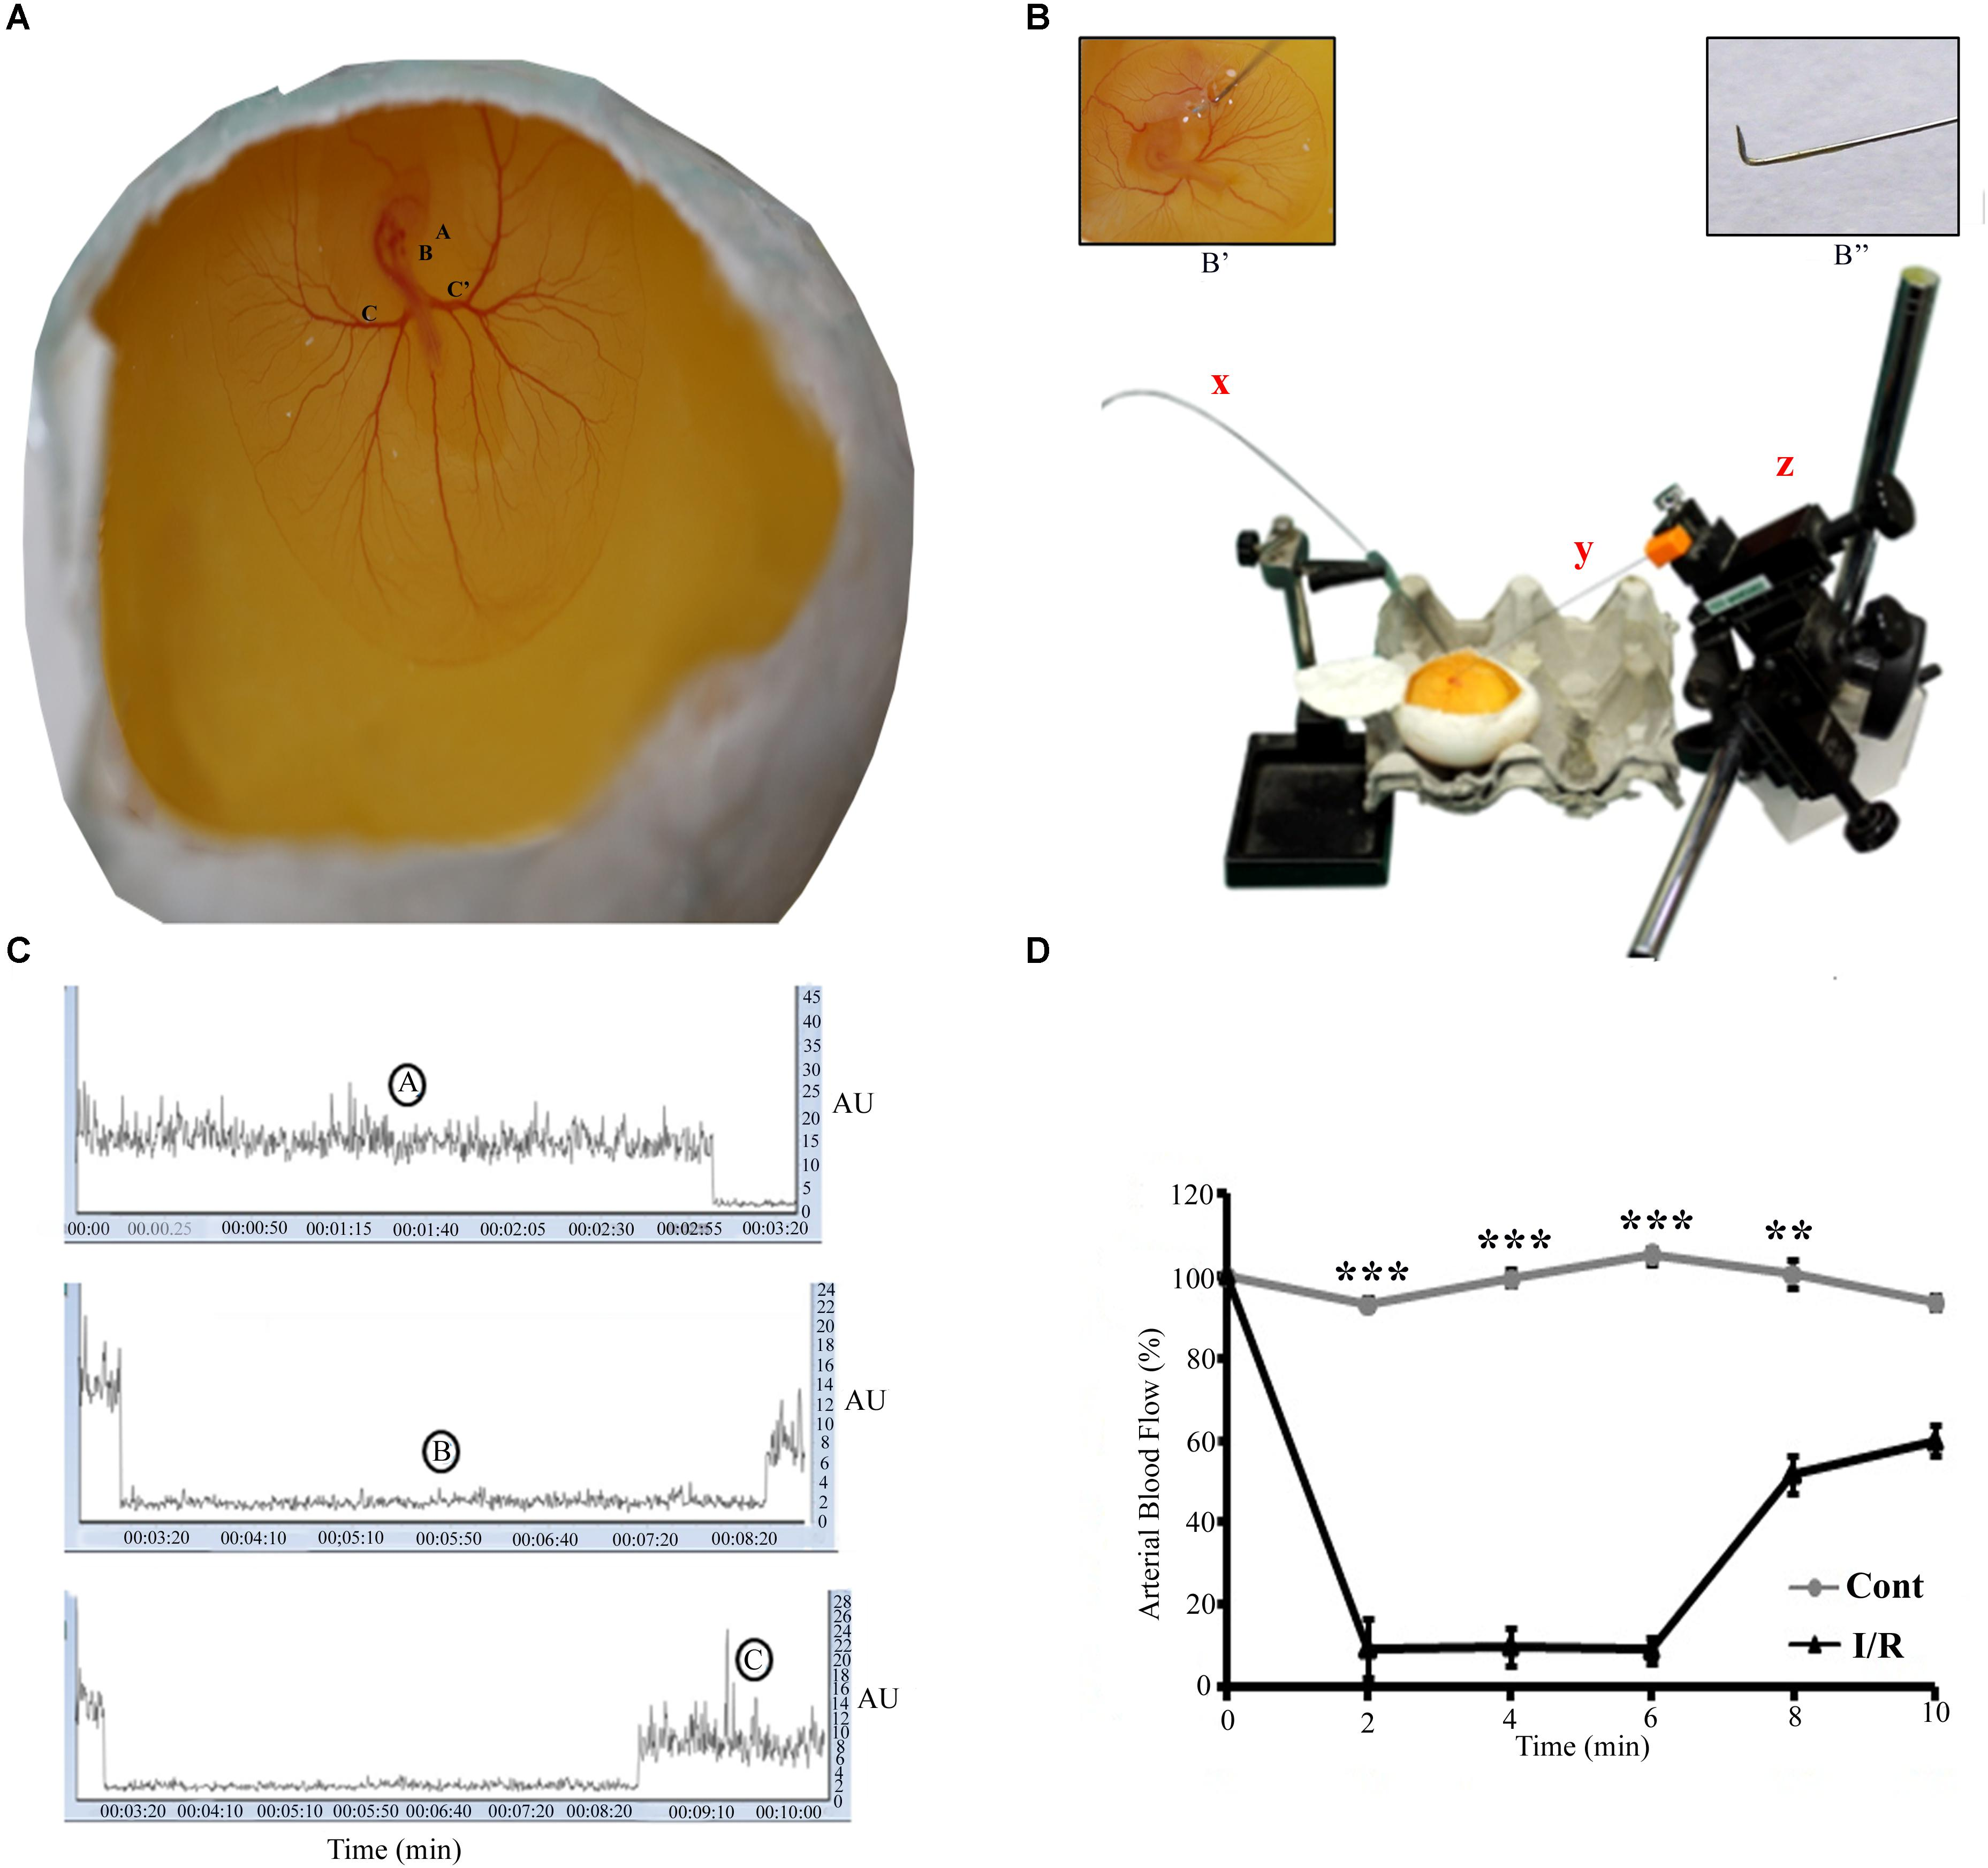 Frontiers | Chick Embryo: A Preclinical Model for